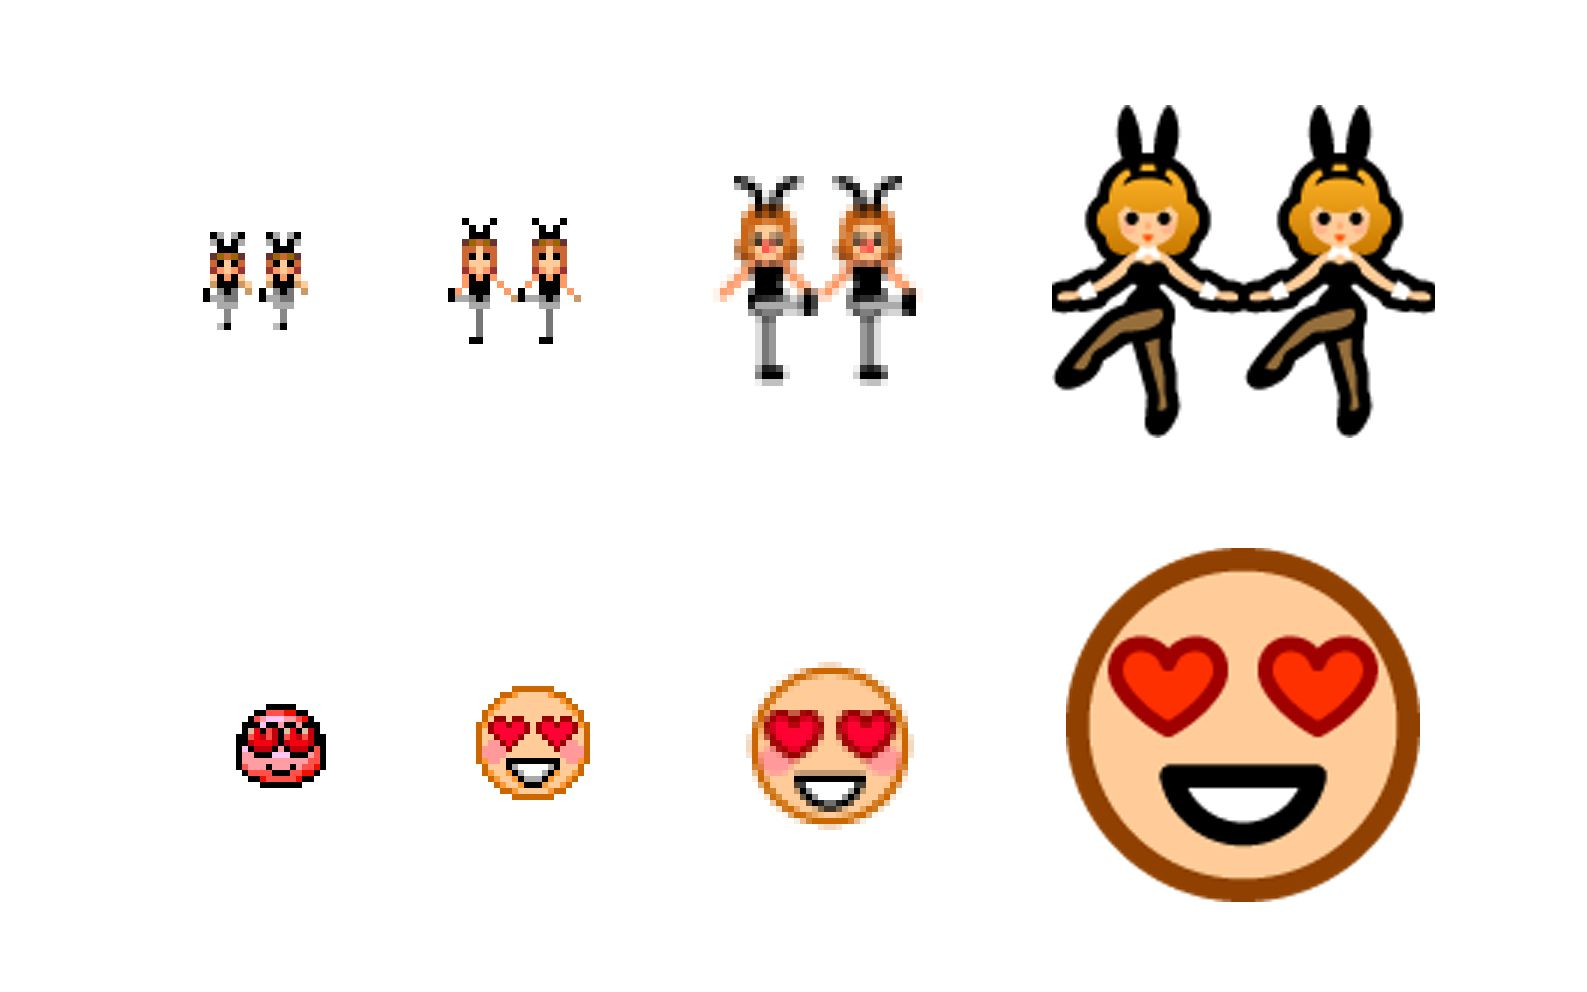 softbank-emoji-evolution-emojipedia